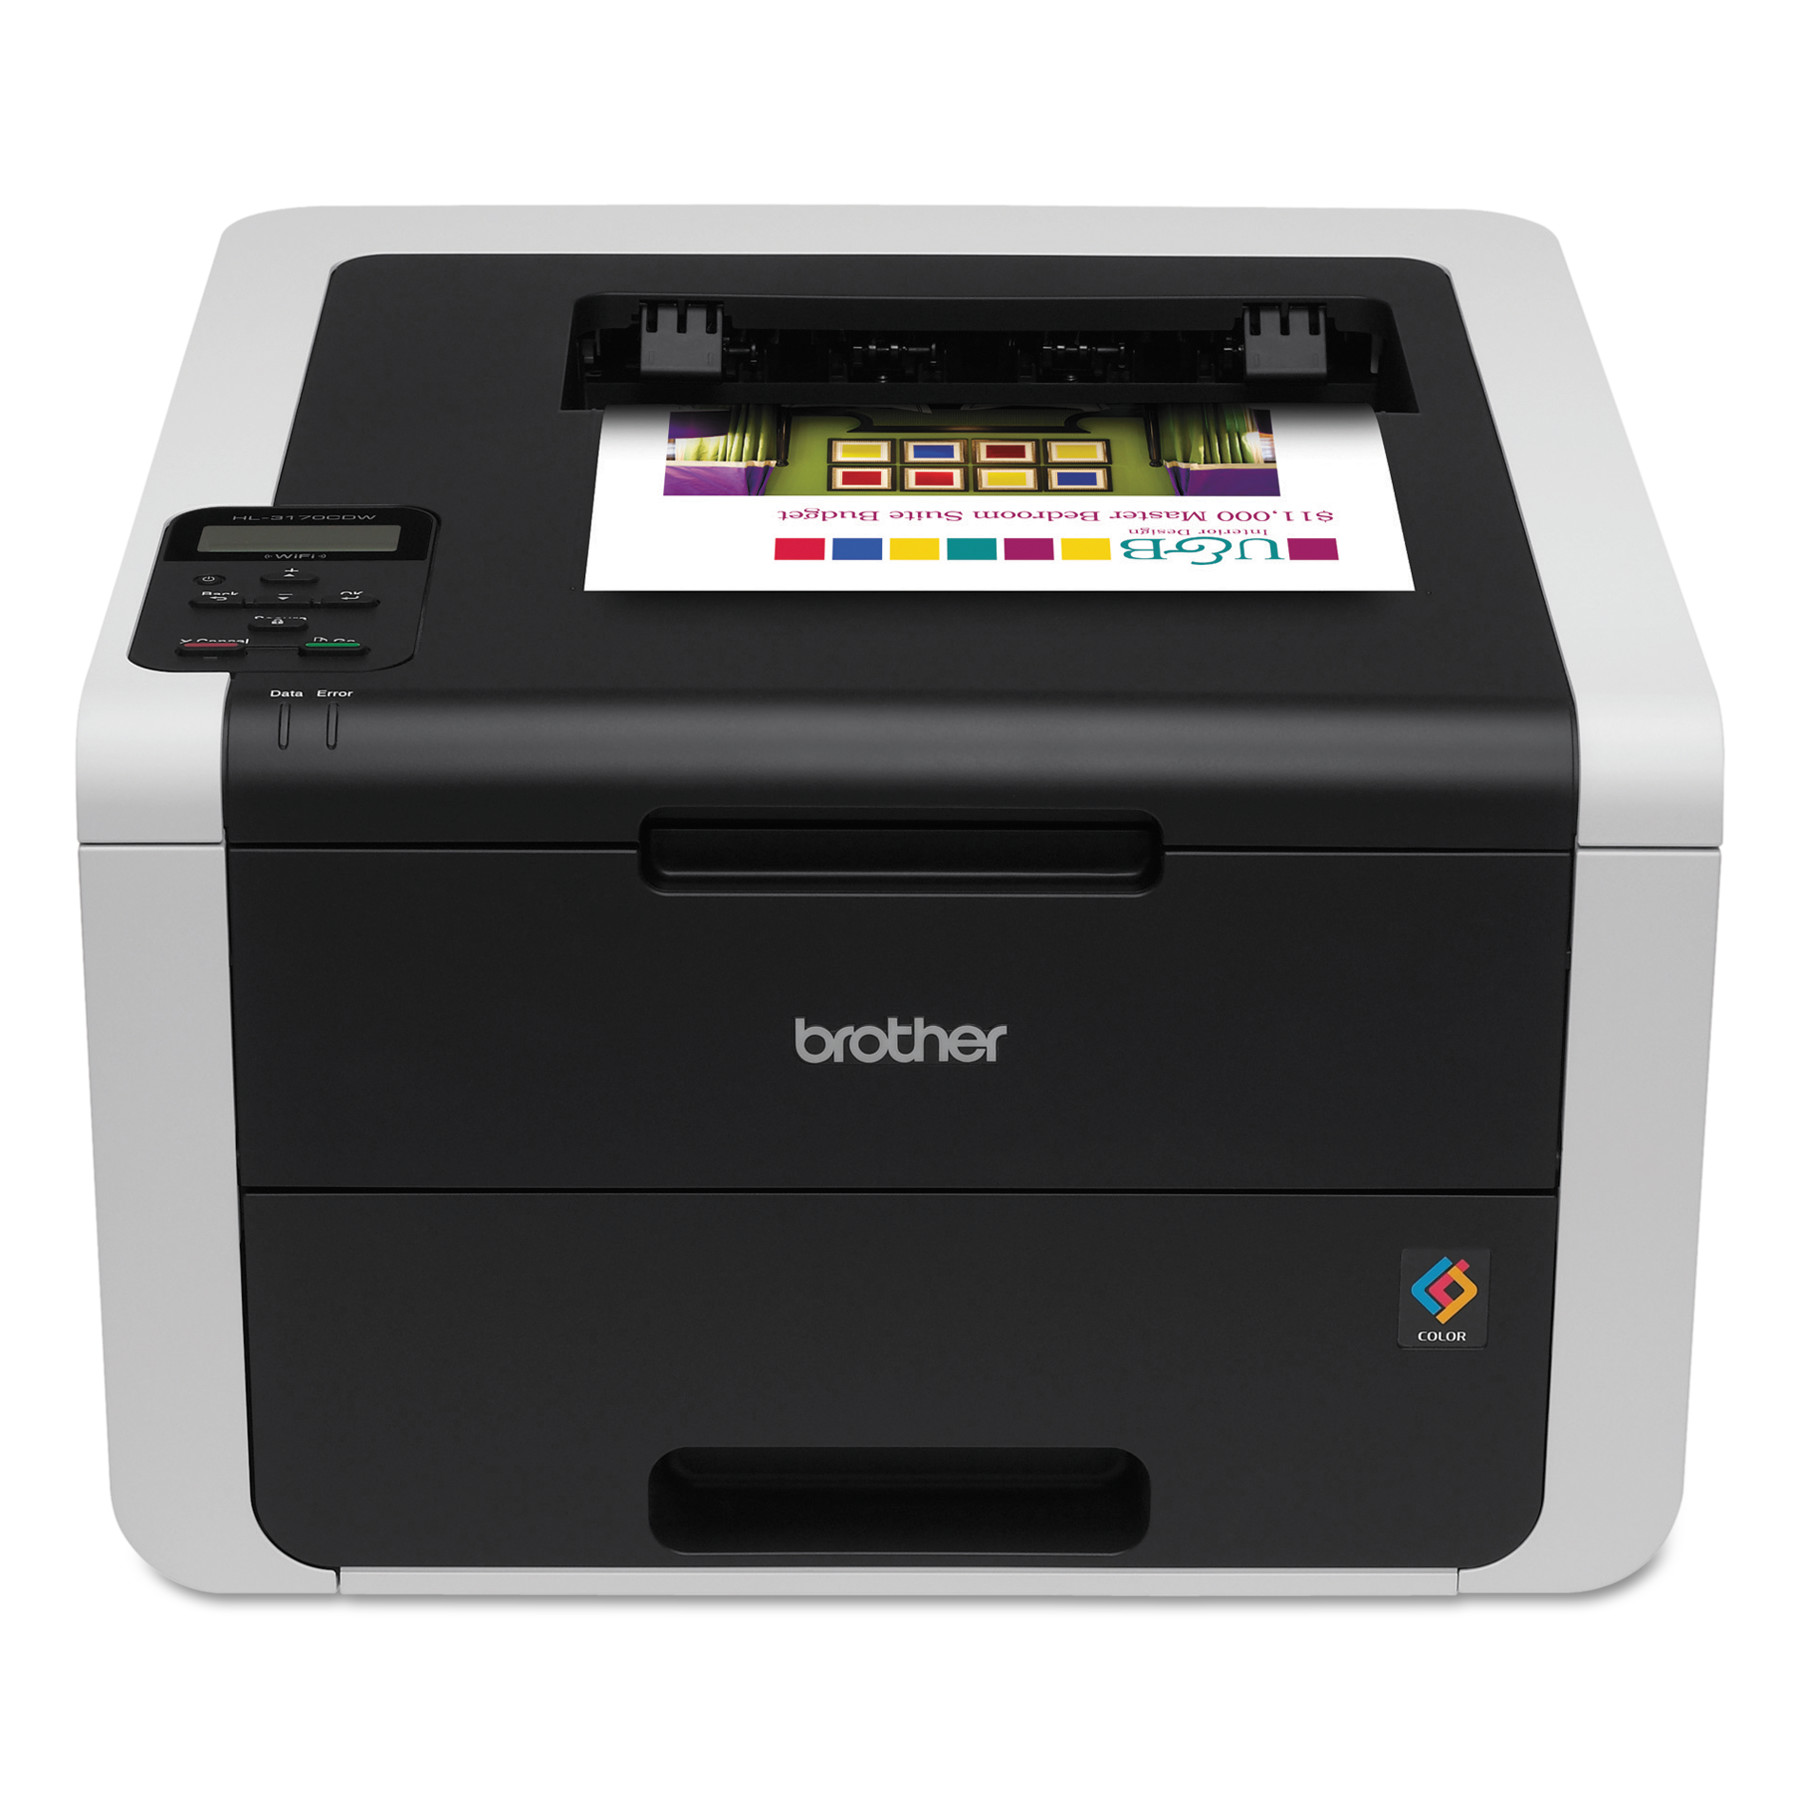 Brother HL-3170CDW Digital Color Printer with Duplex Printing and Wireless Networking by Brother